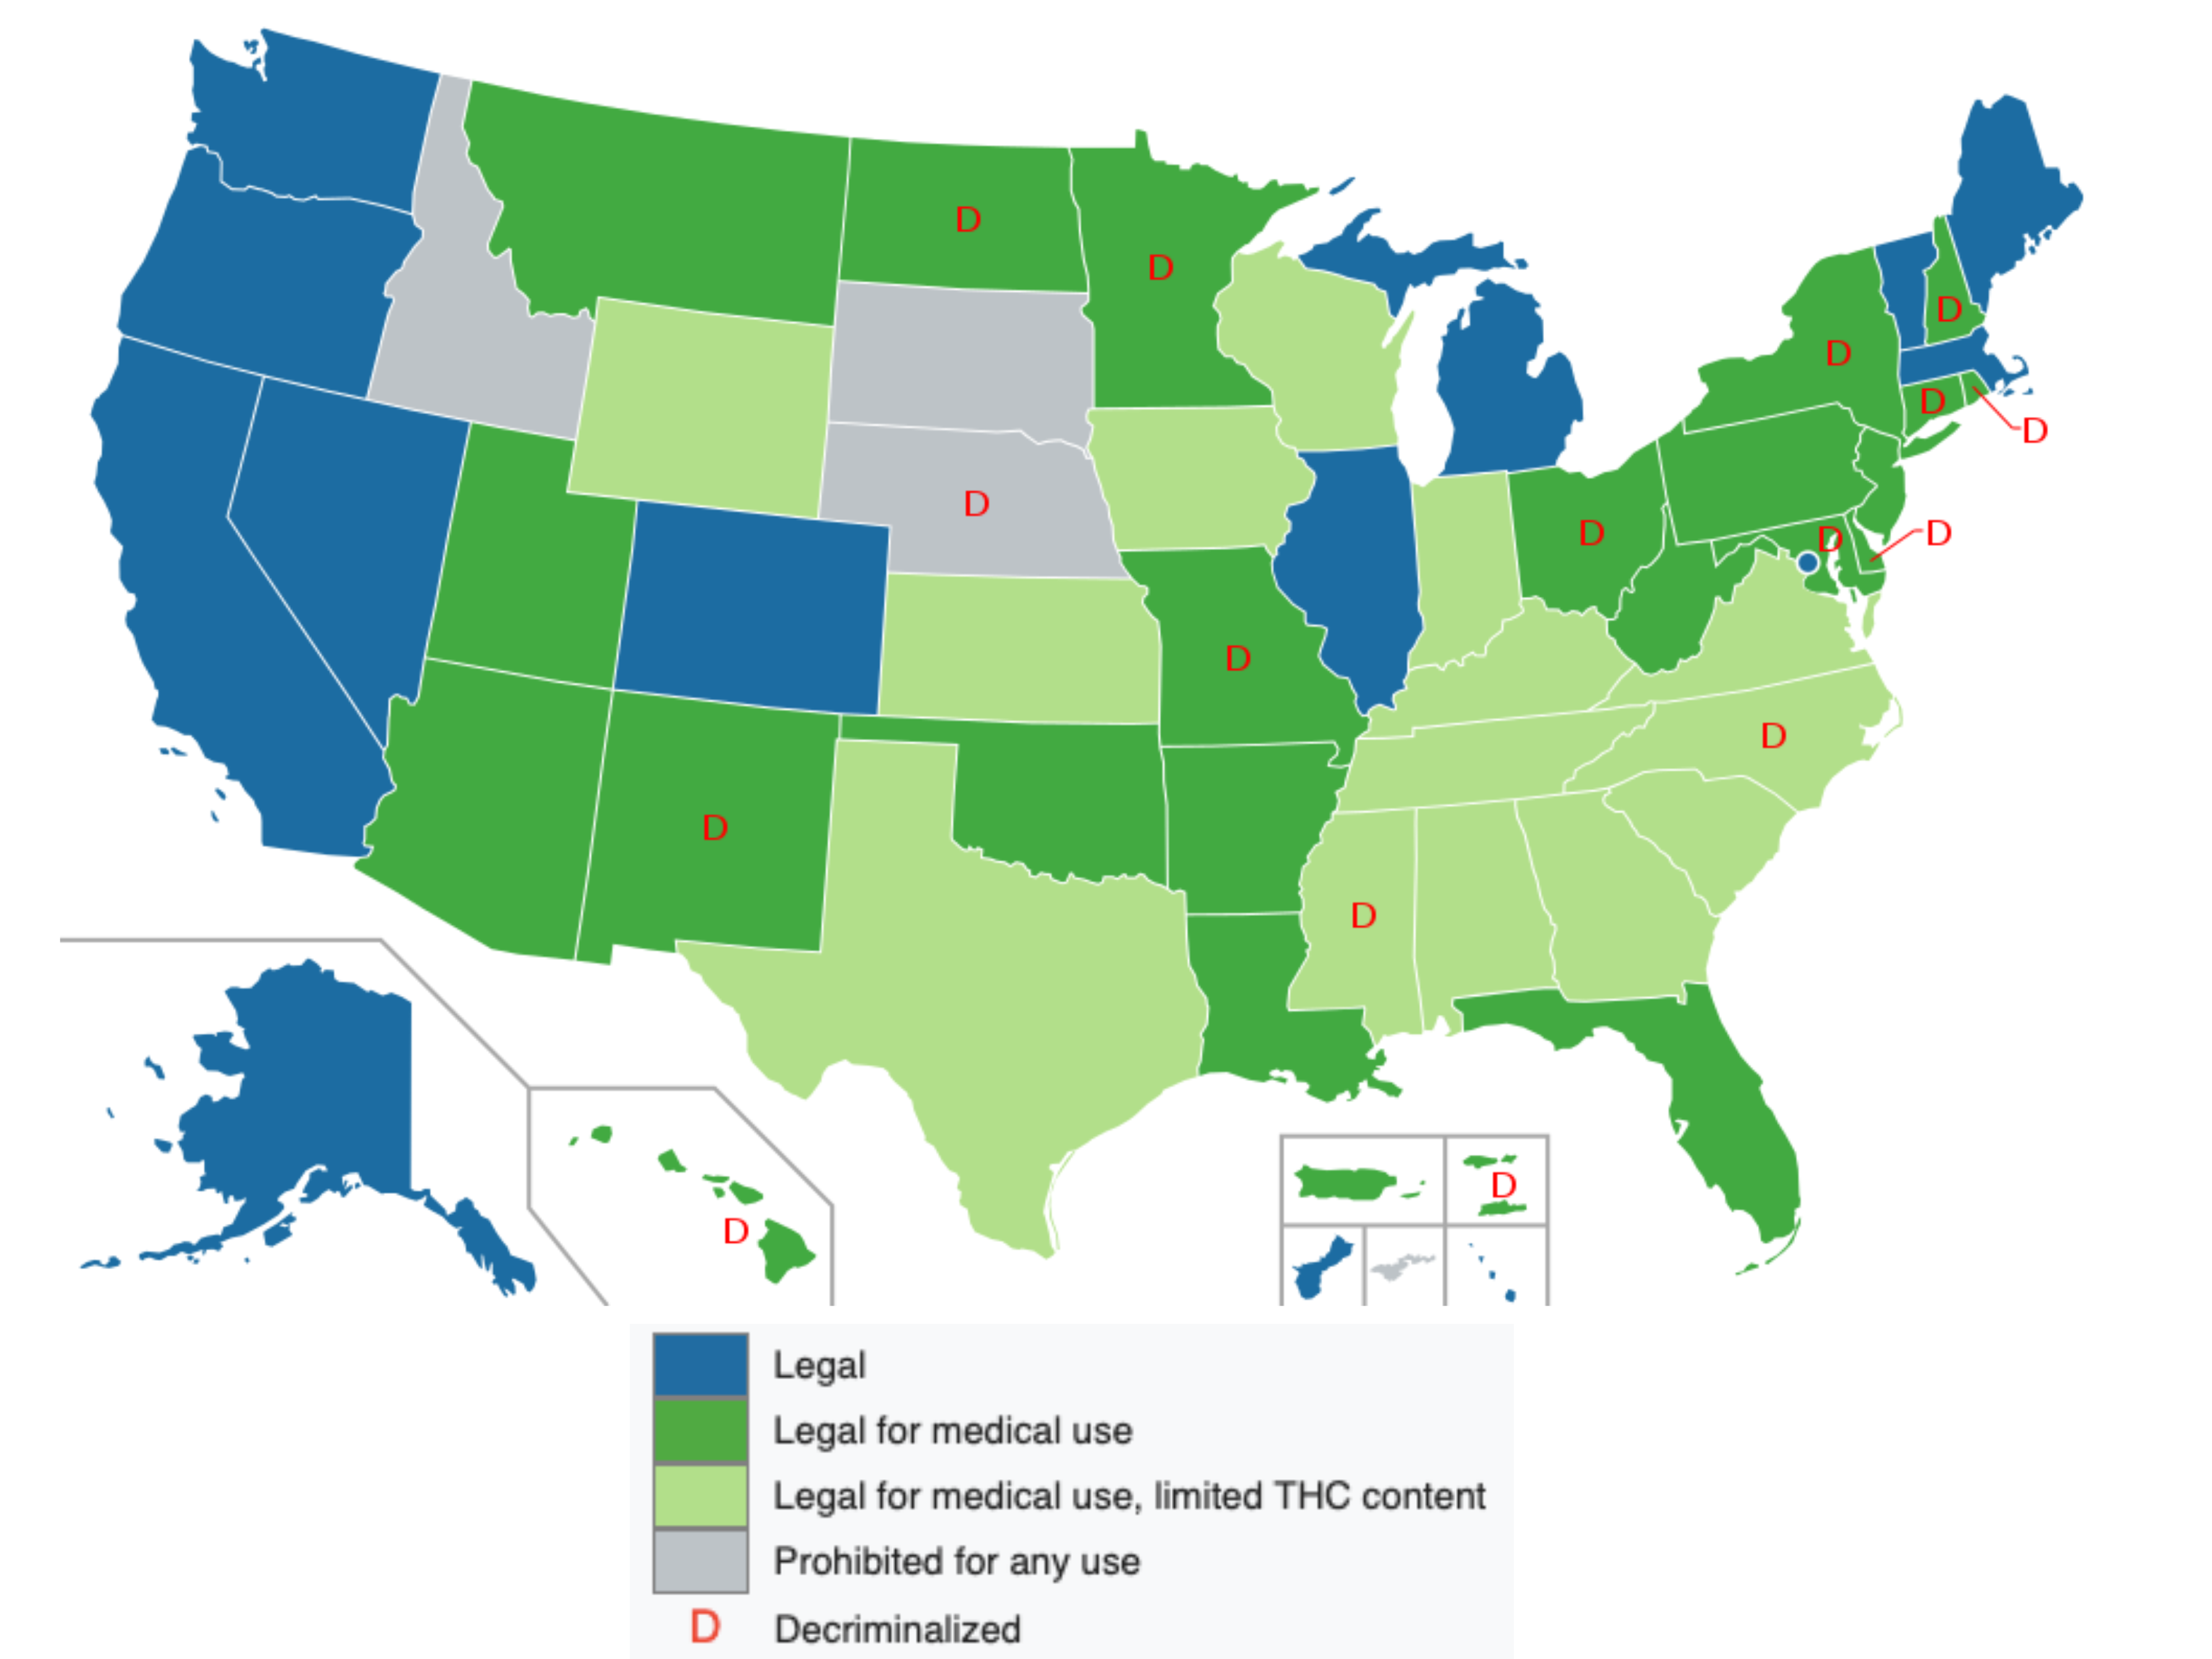 marijuana laws state by state